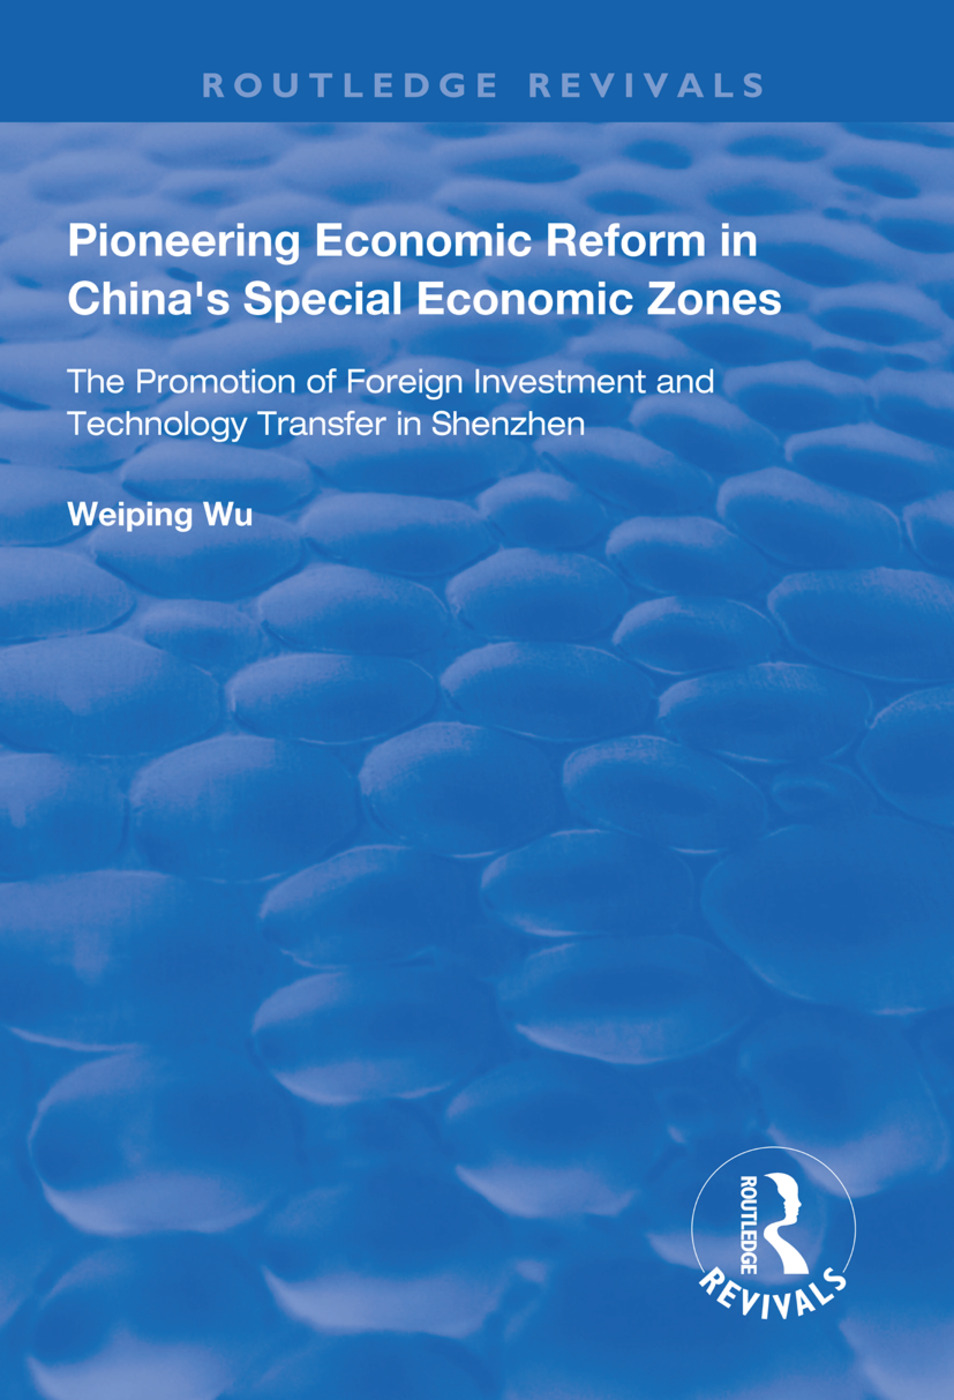 Pioneering Economic Reform in China's Special Economic Zones: The Promotion of Foreign Investment and Technology Transfer in Shenzhen book cover